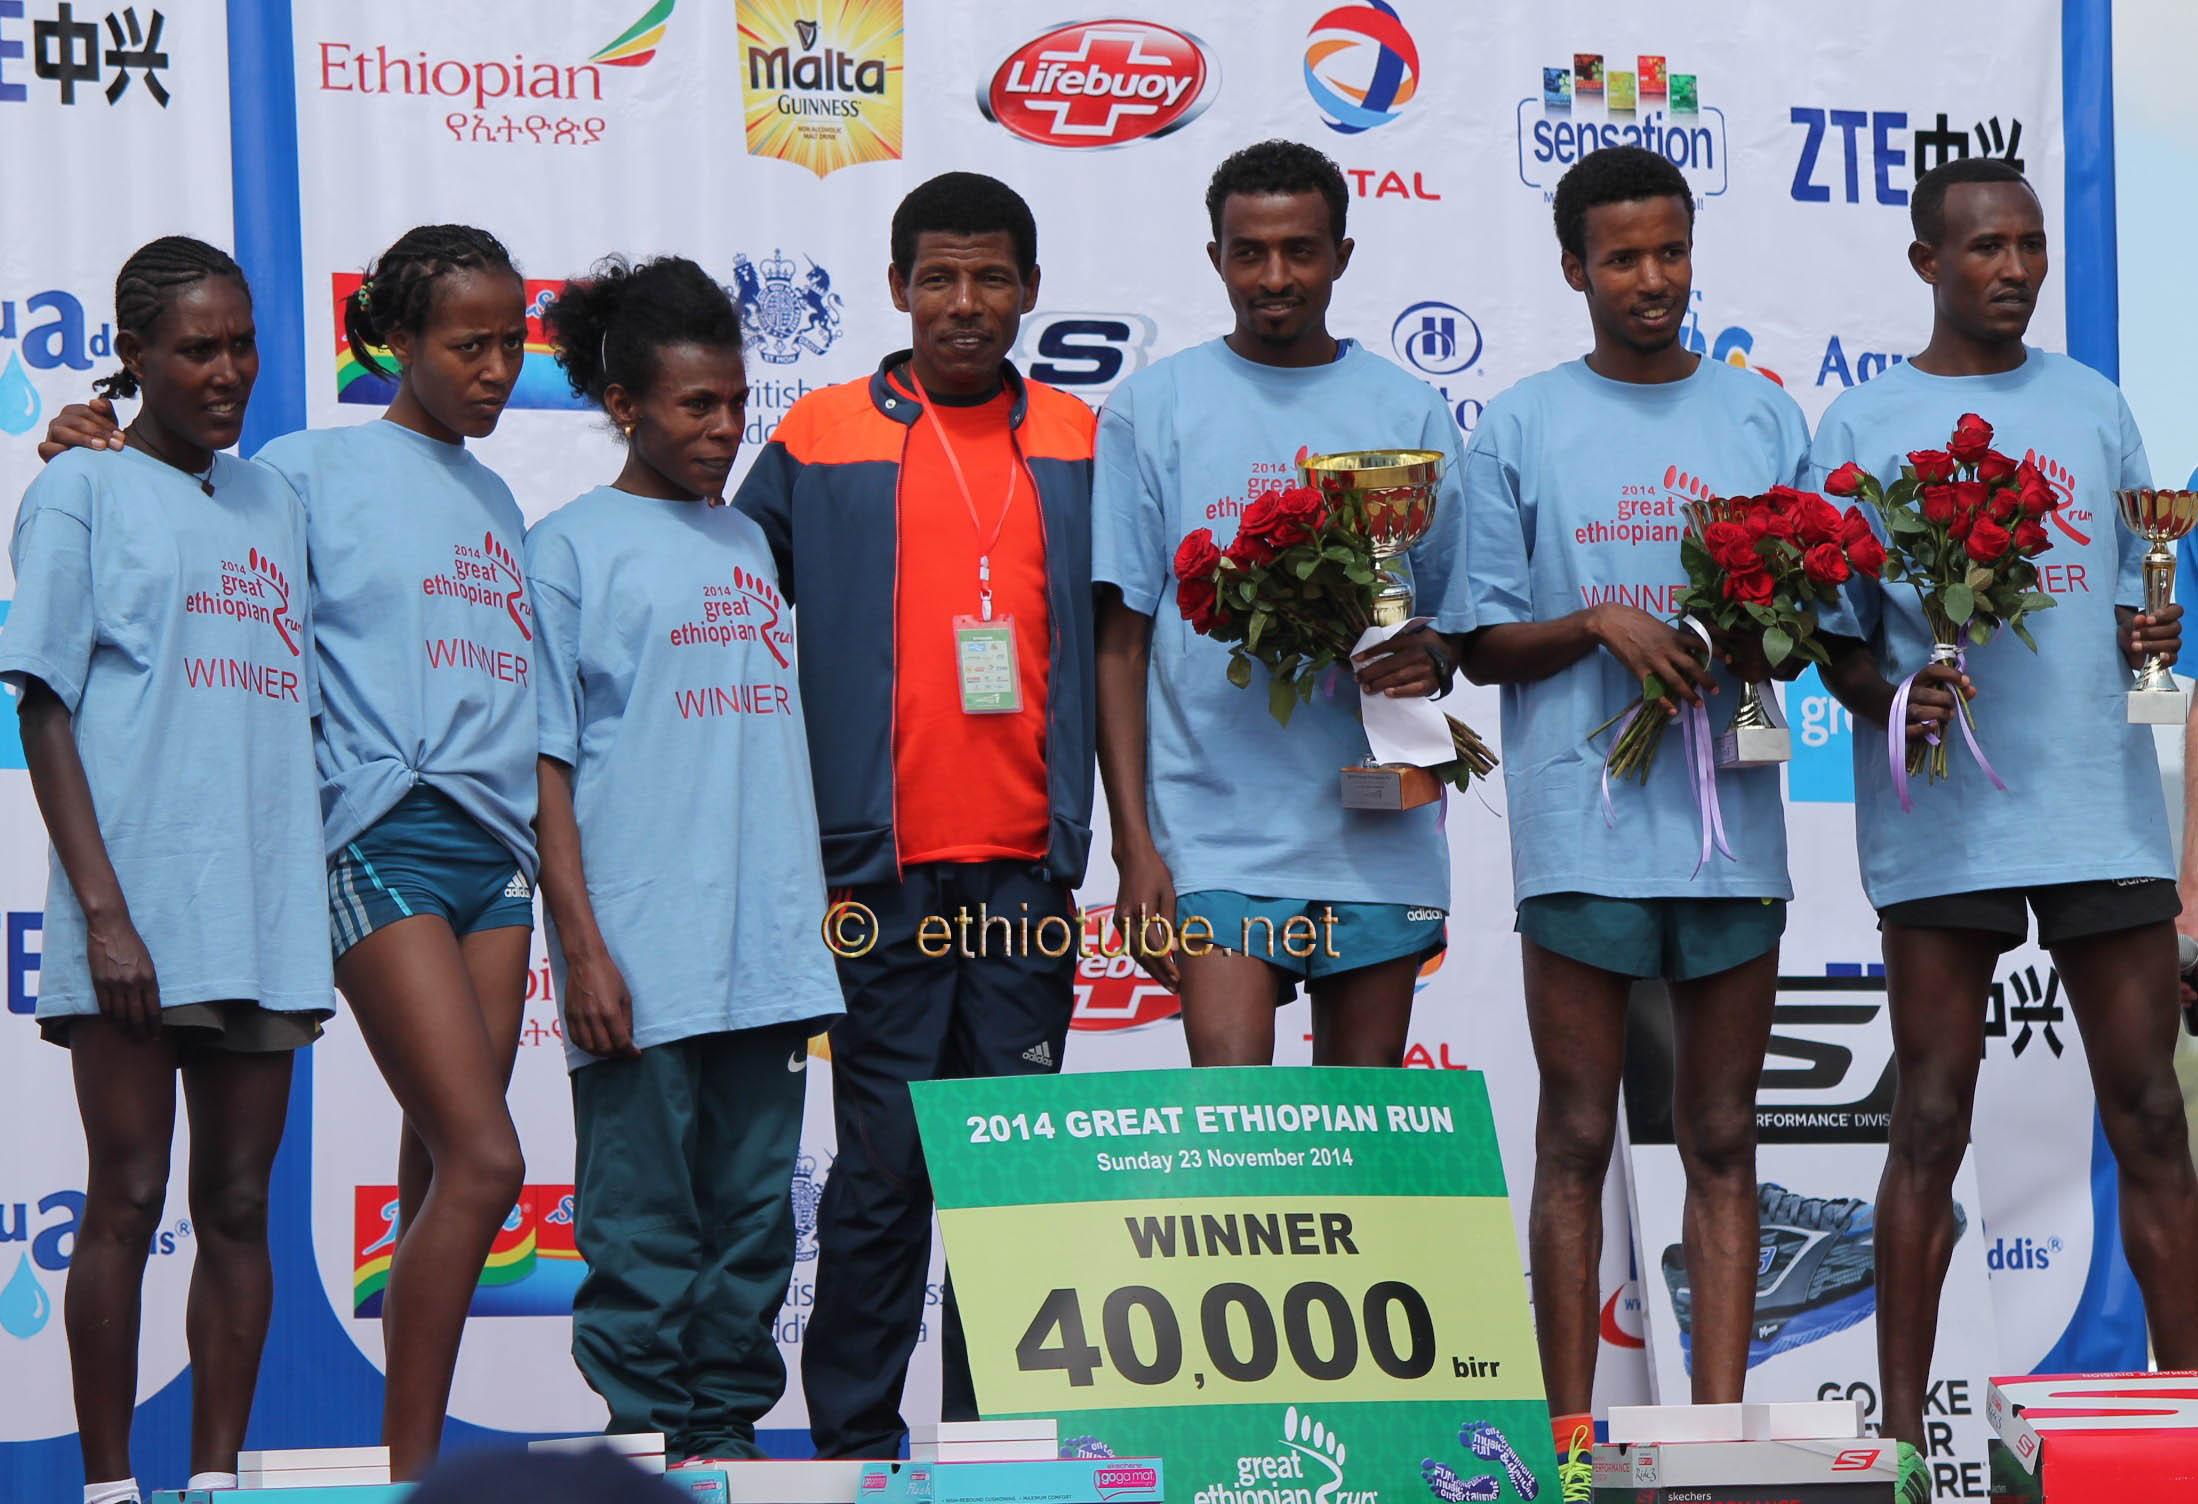 Winners of the 2014 GER 10k with Haile